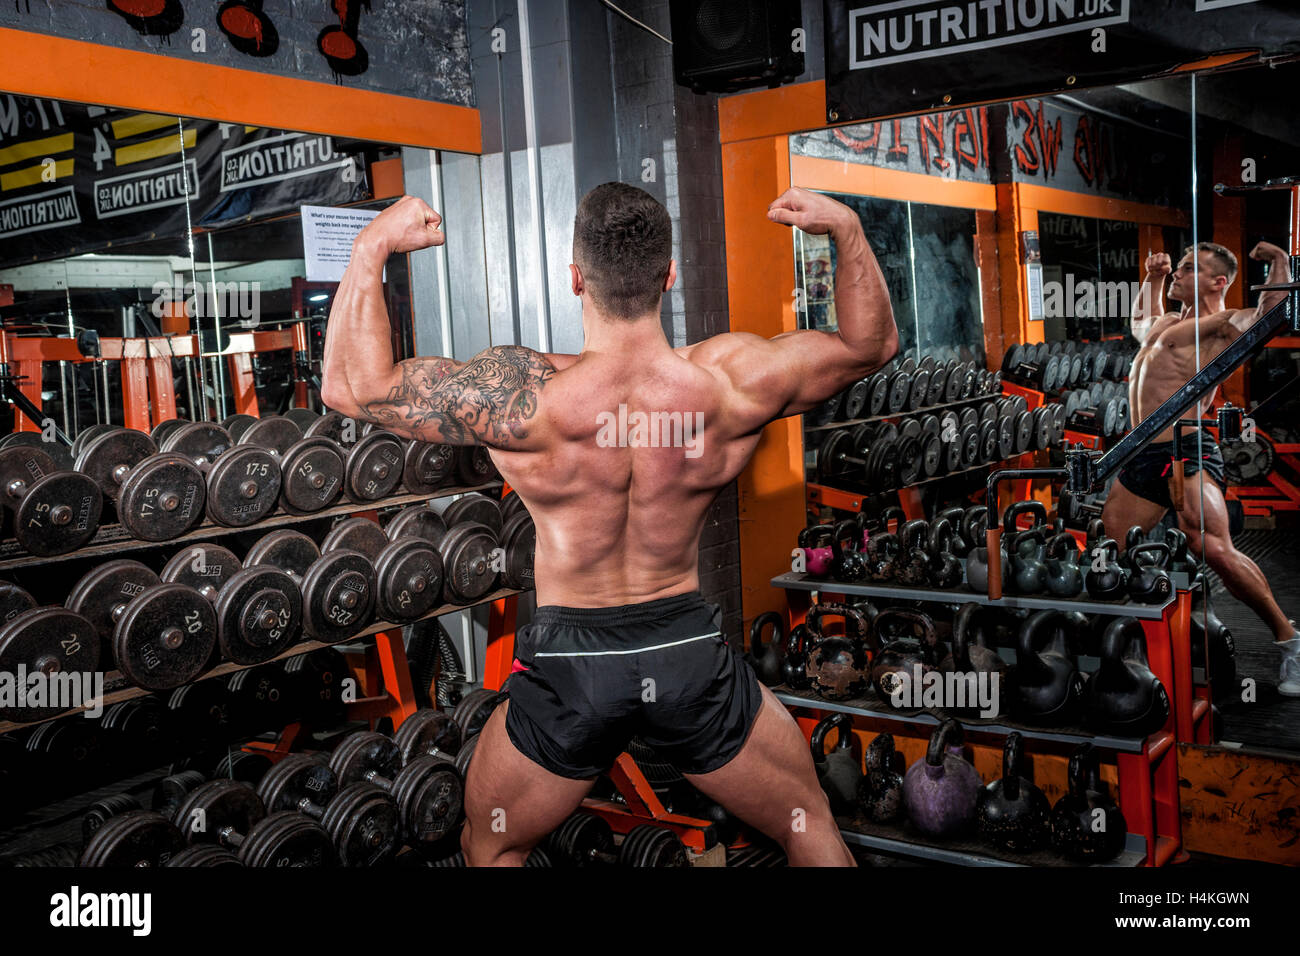 bodybuilder doing competition poses and showing defined back and arm muscles - Stock Image